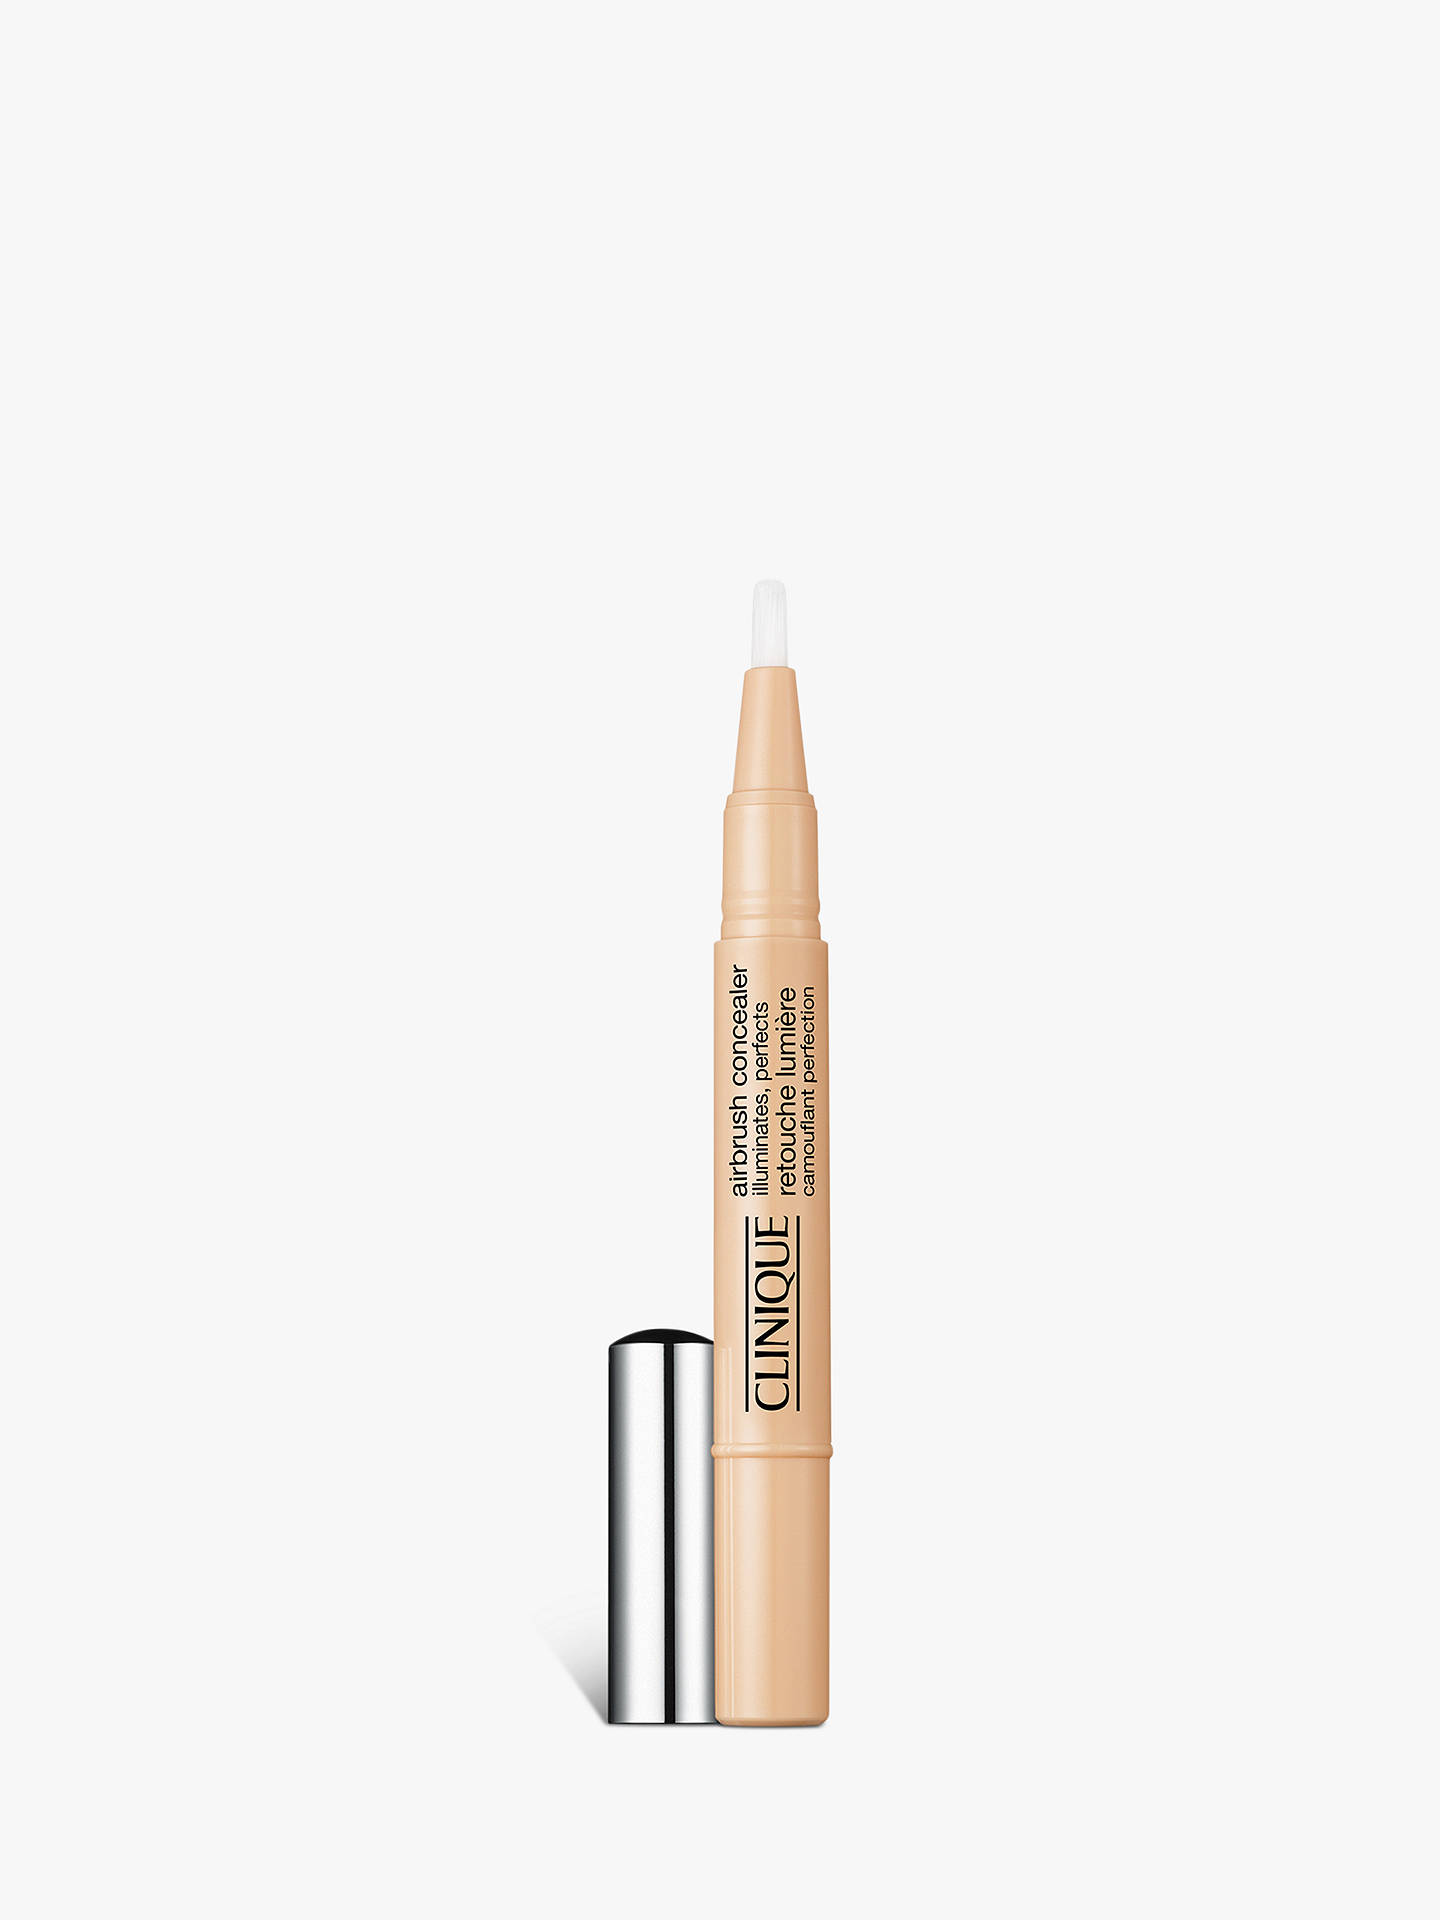 Buy Clinique Airbrush Concealer - All Skin Types, 1.5ml, Fair Cream Online at johnlewis.com